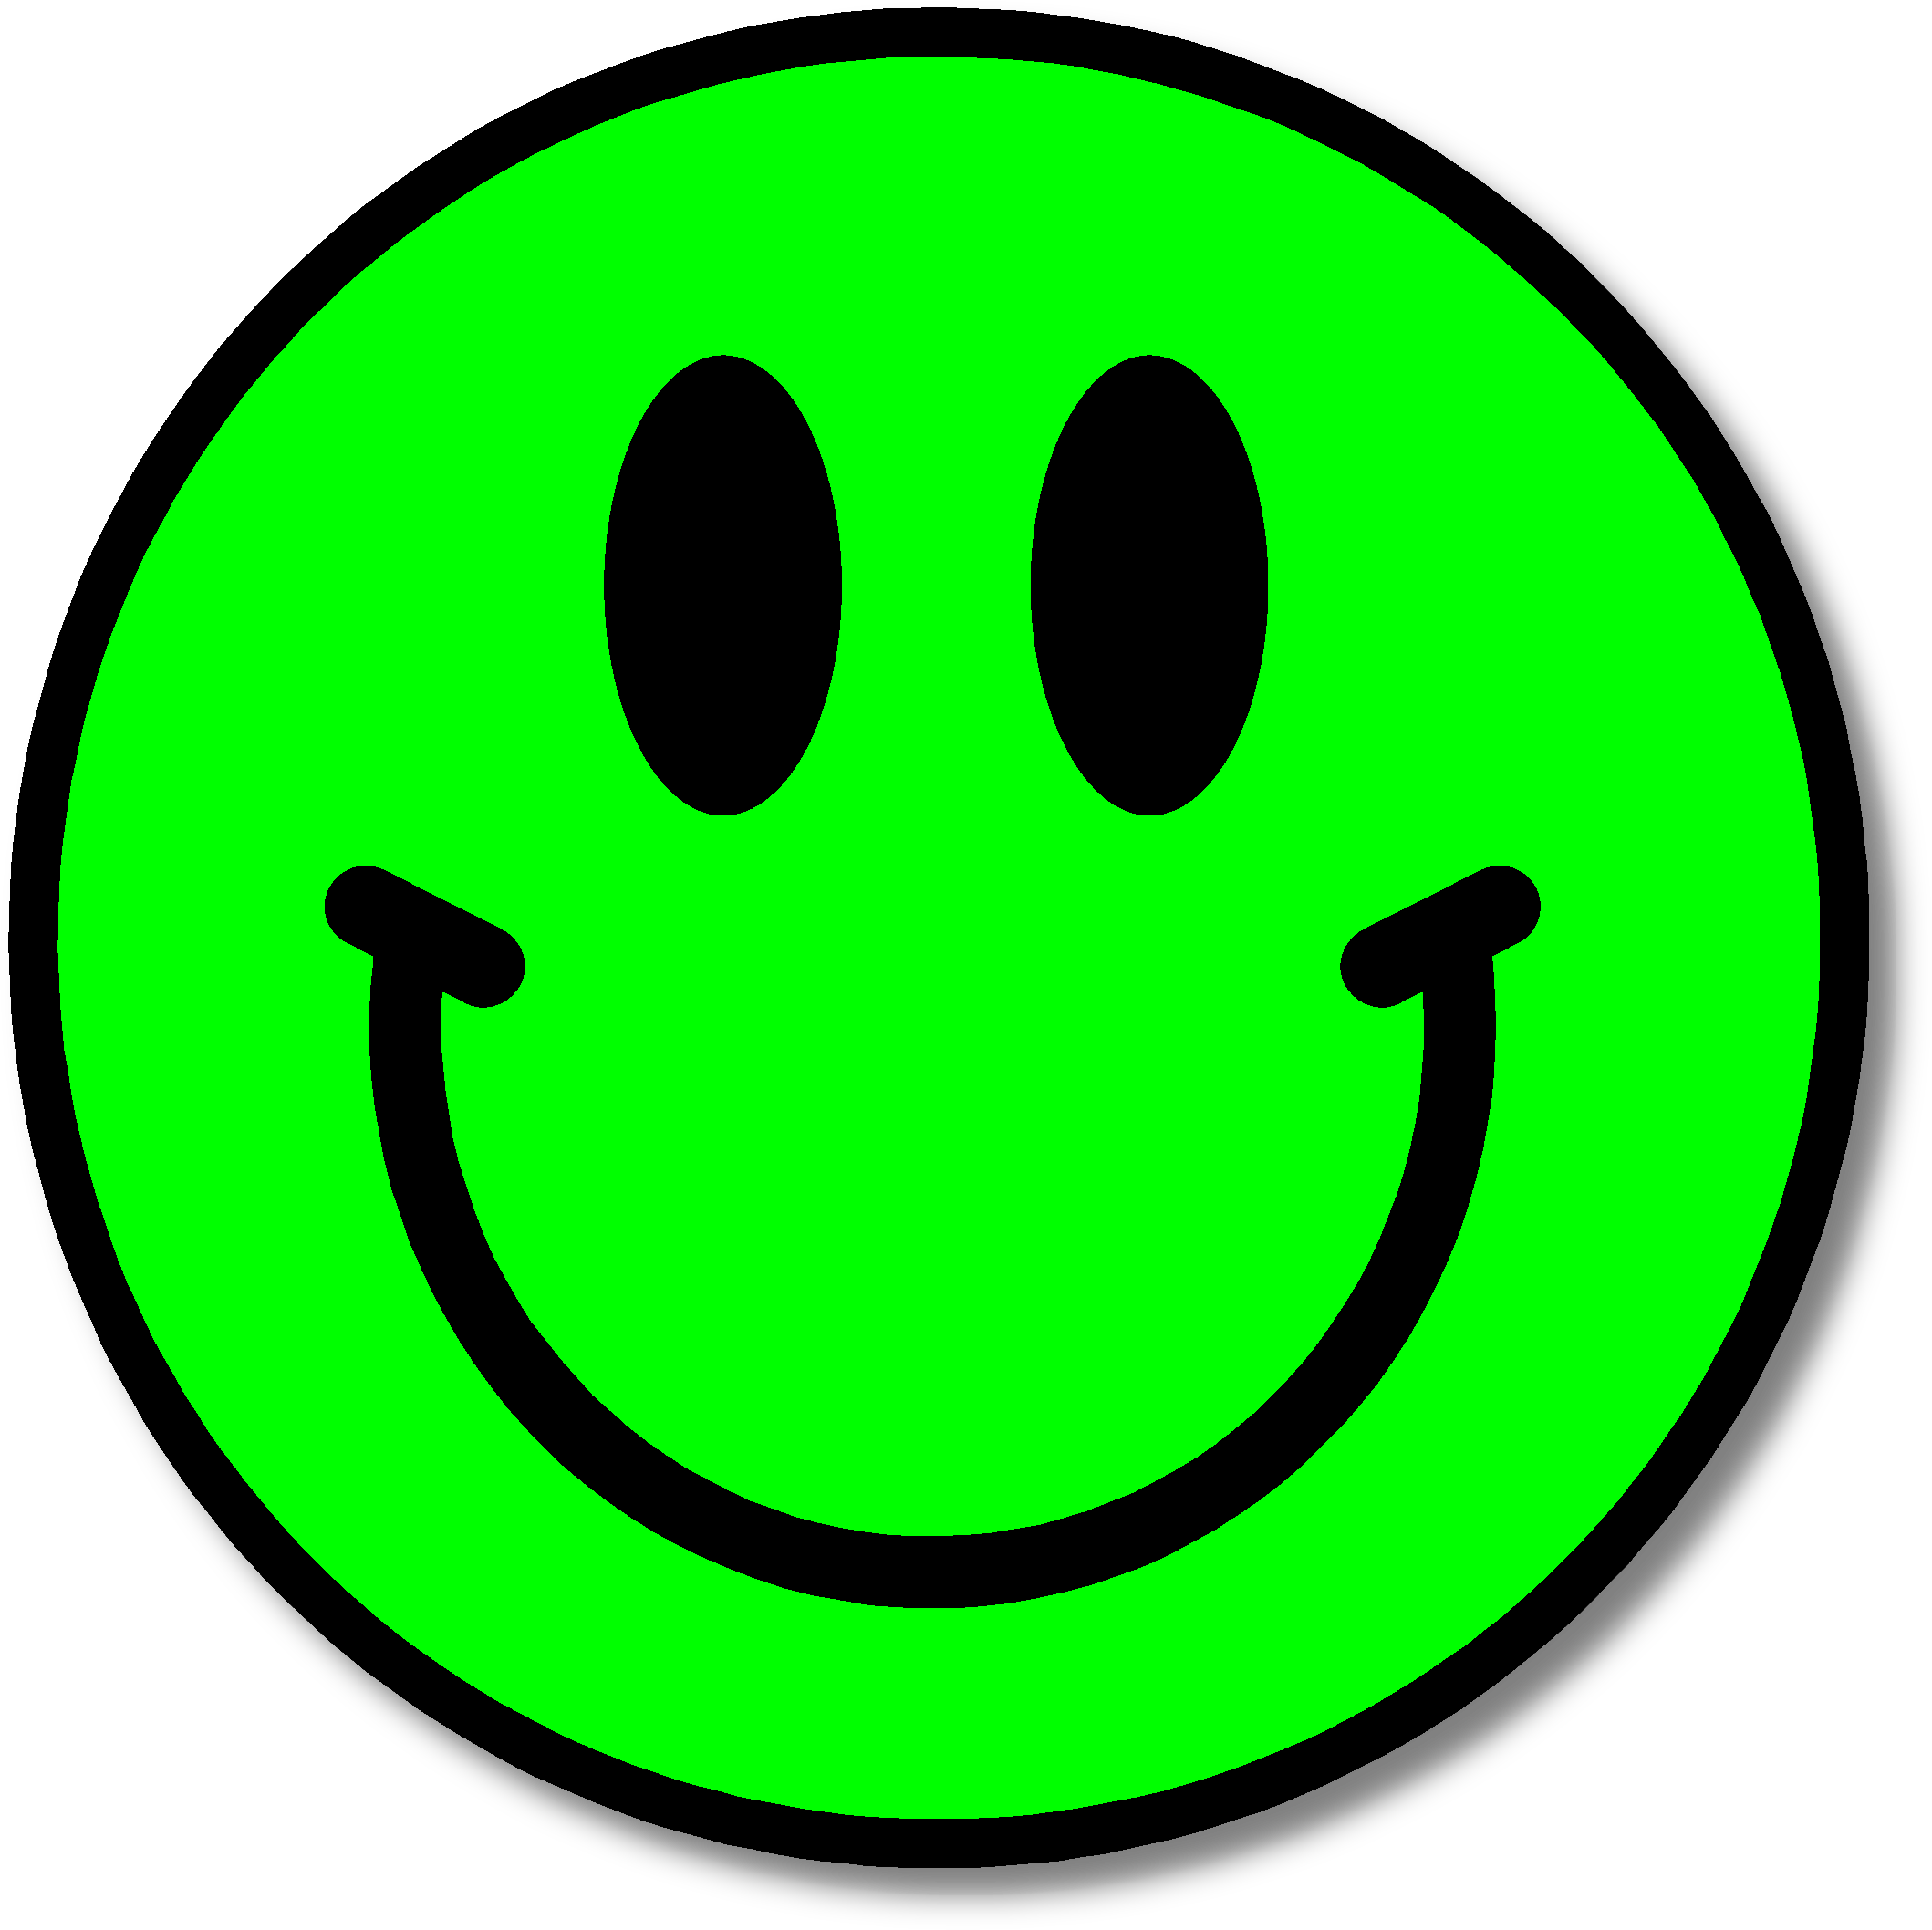 clip download Acetylsalicylic acid futurederm green. Yes clipart happy face